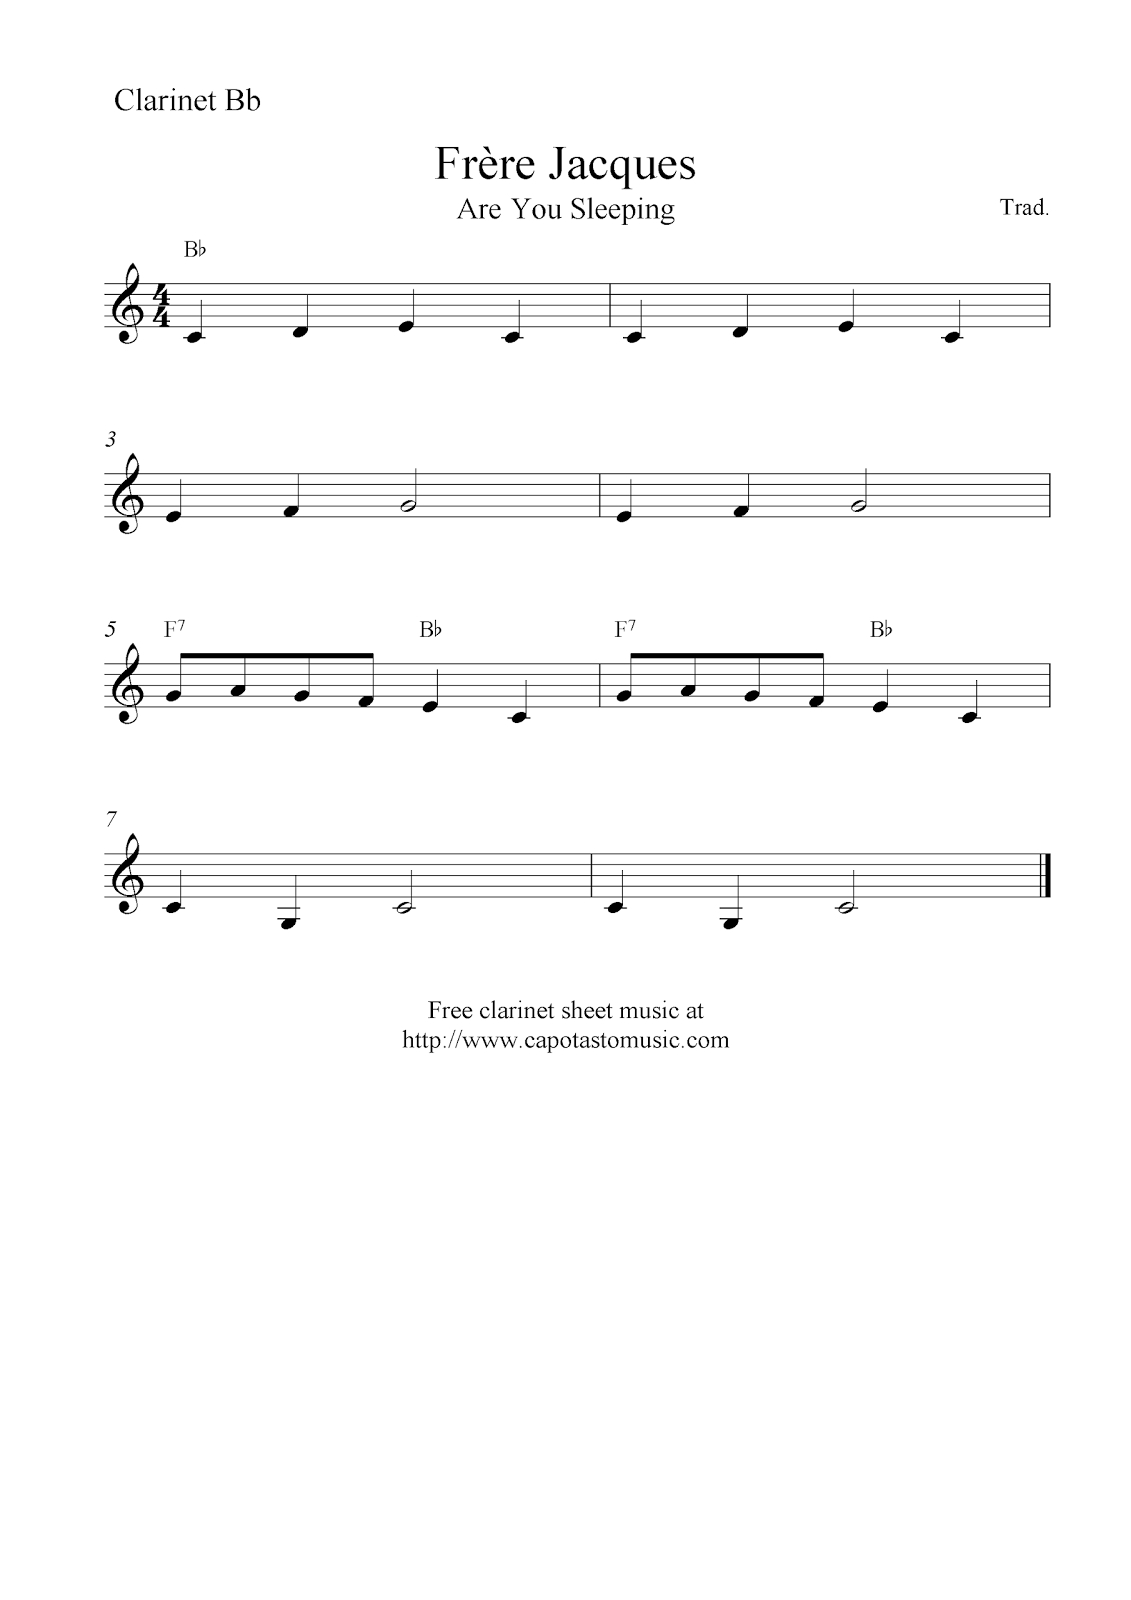 Frère Jacques (Are You Sleeping), Free Easy Clarinet Sheet Music Notes - Free Sheet Music For Clarinet Printable